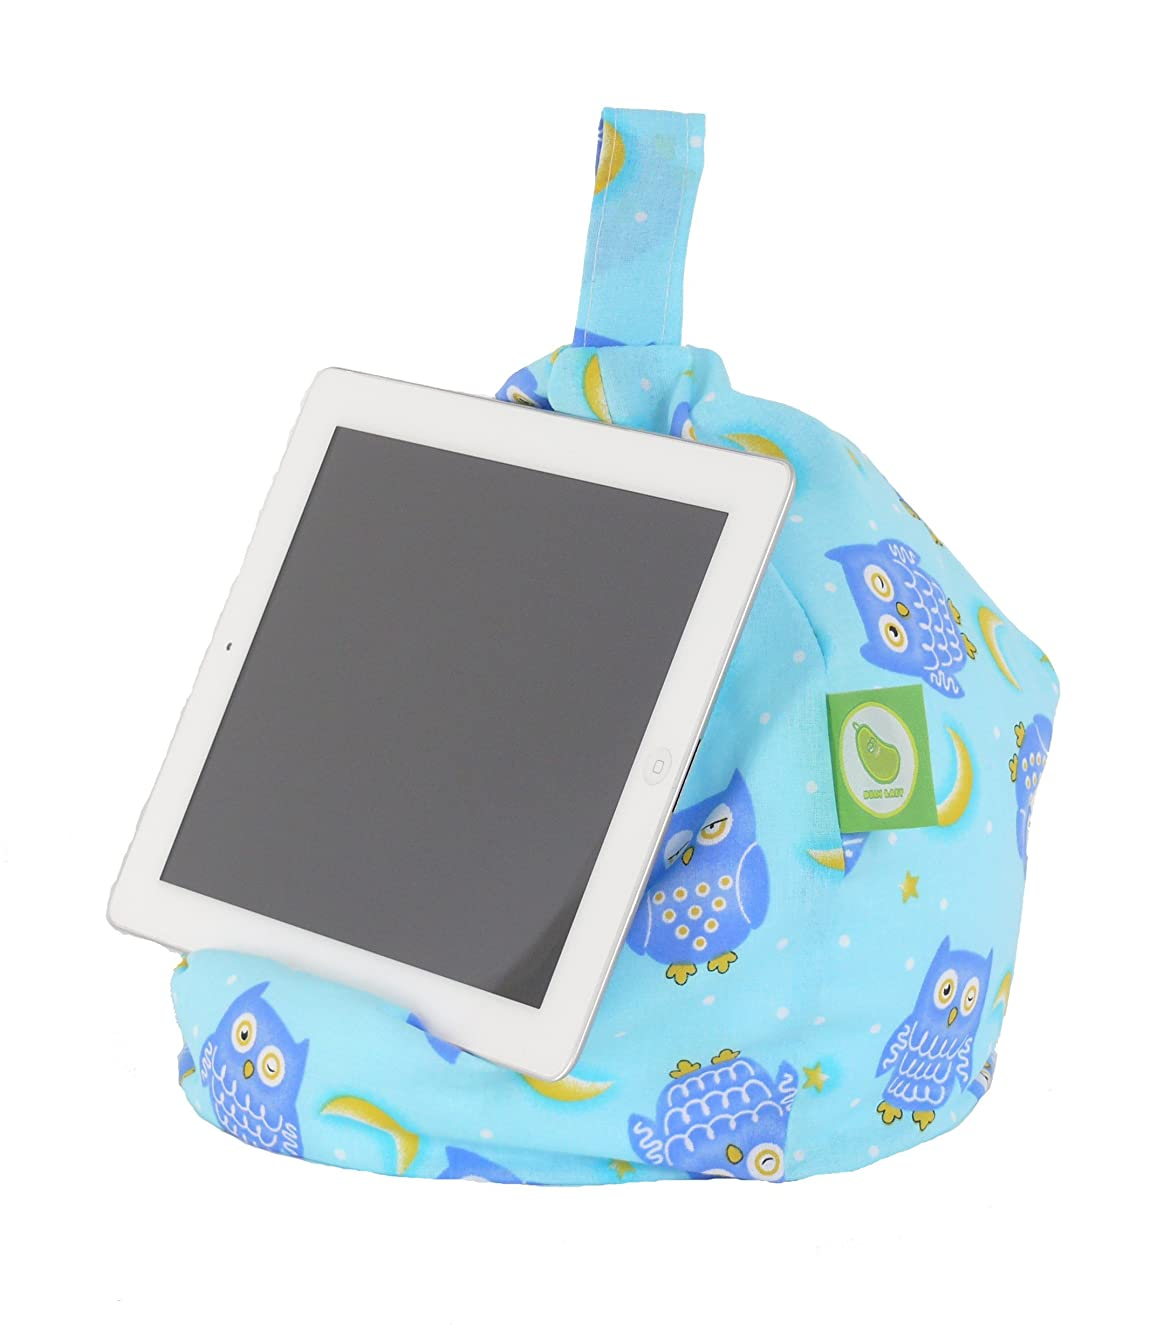 Bean Lazy Ipad, Ereader & Book Mini Bean Bag Fits All Tablets and Ereaders - Blue Owl